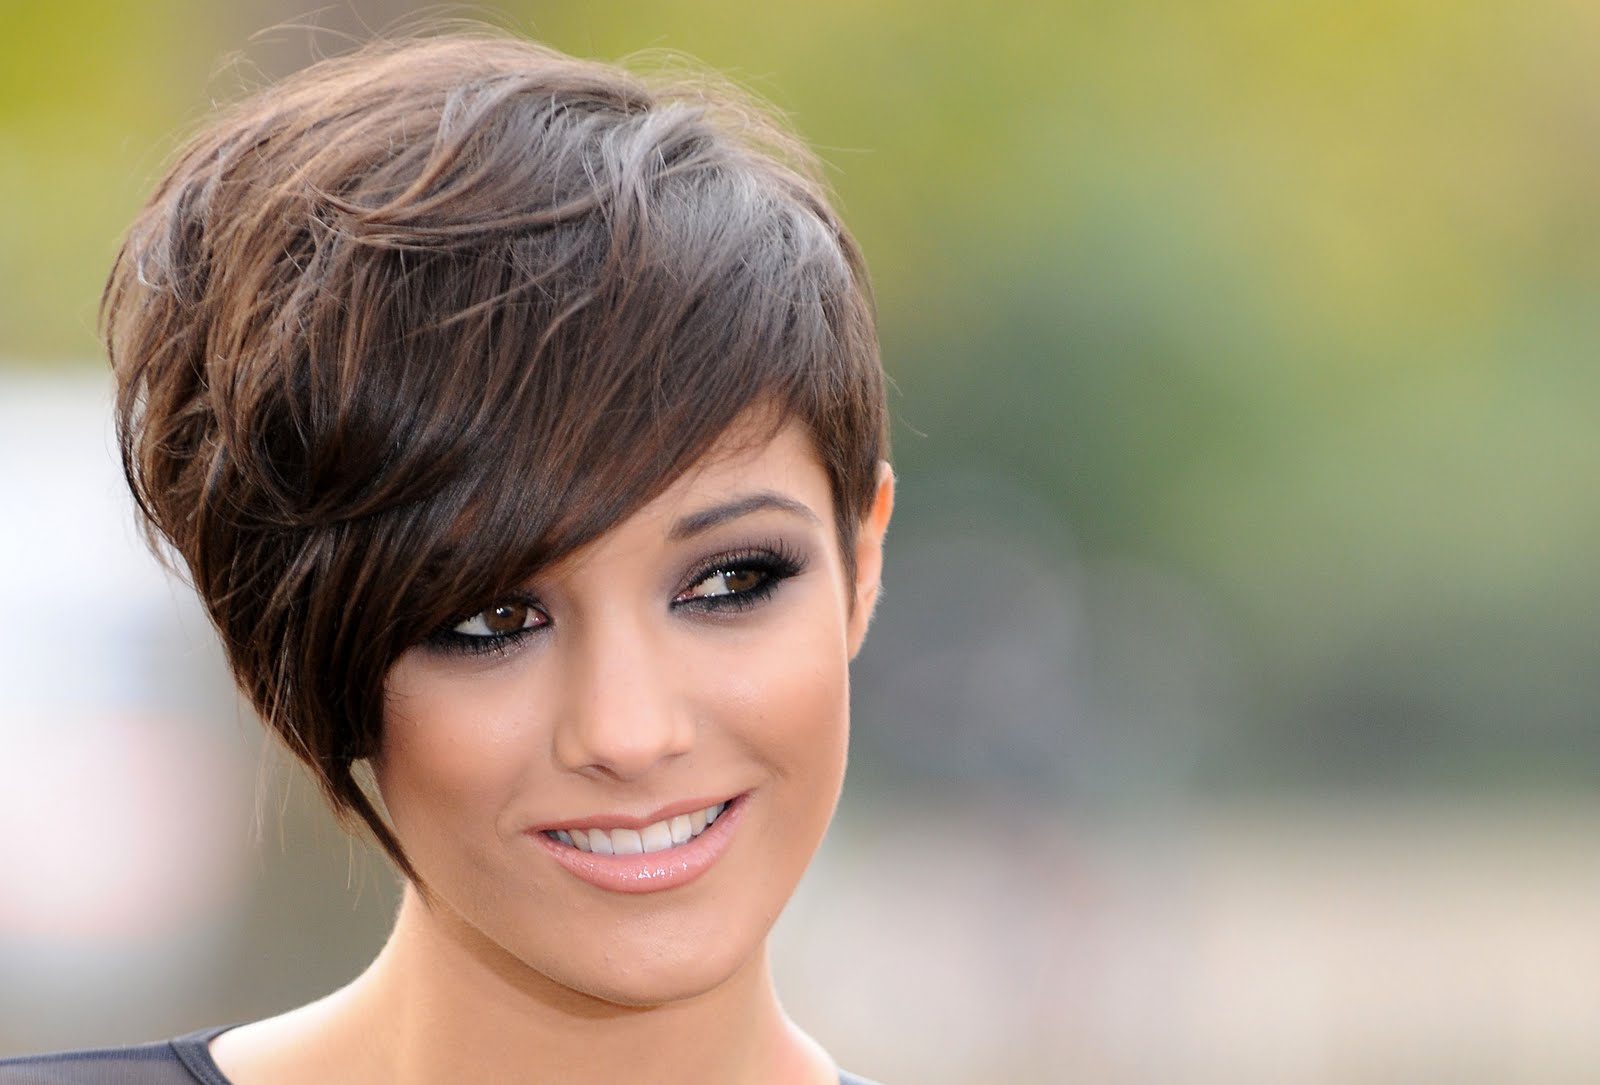 pictures of photos - Short hairstyles for women ]:=-